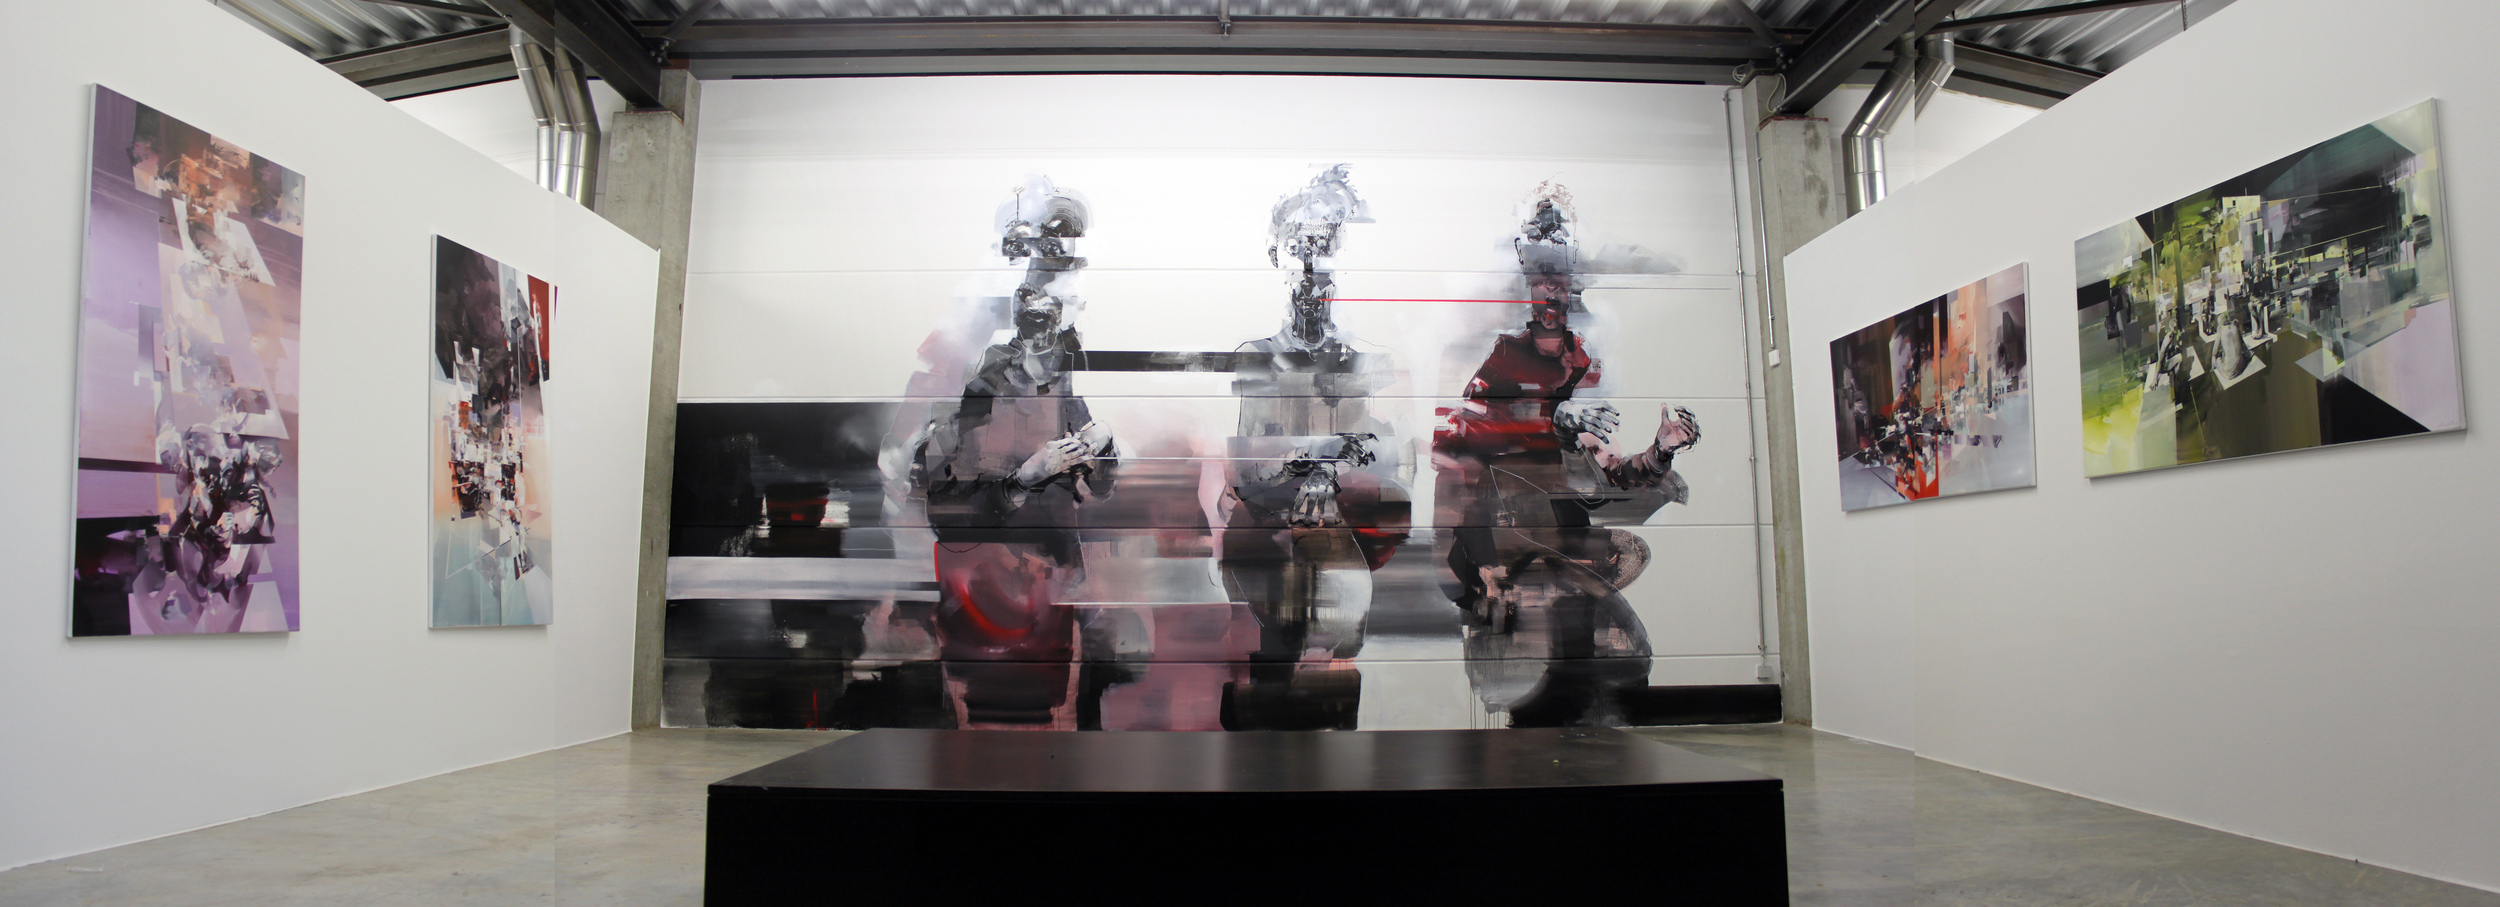 Public Provovations Groupshow (Box View)